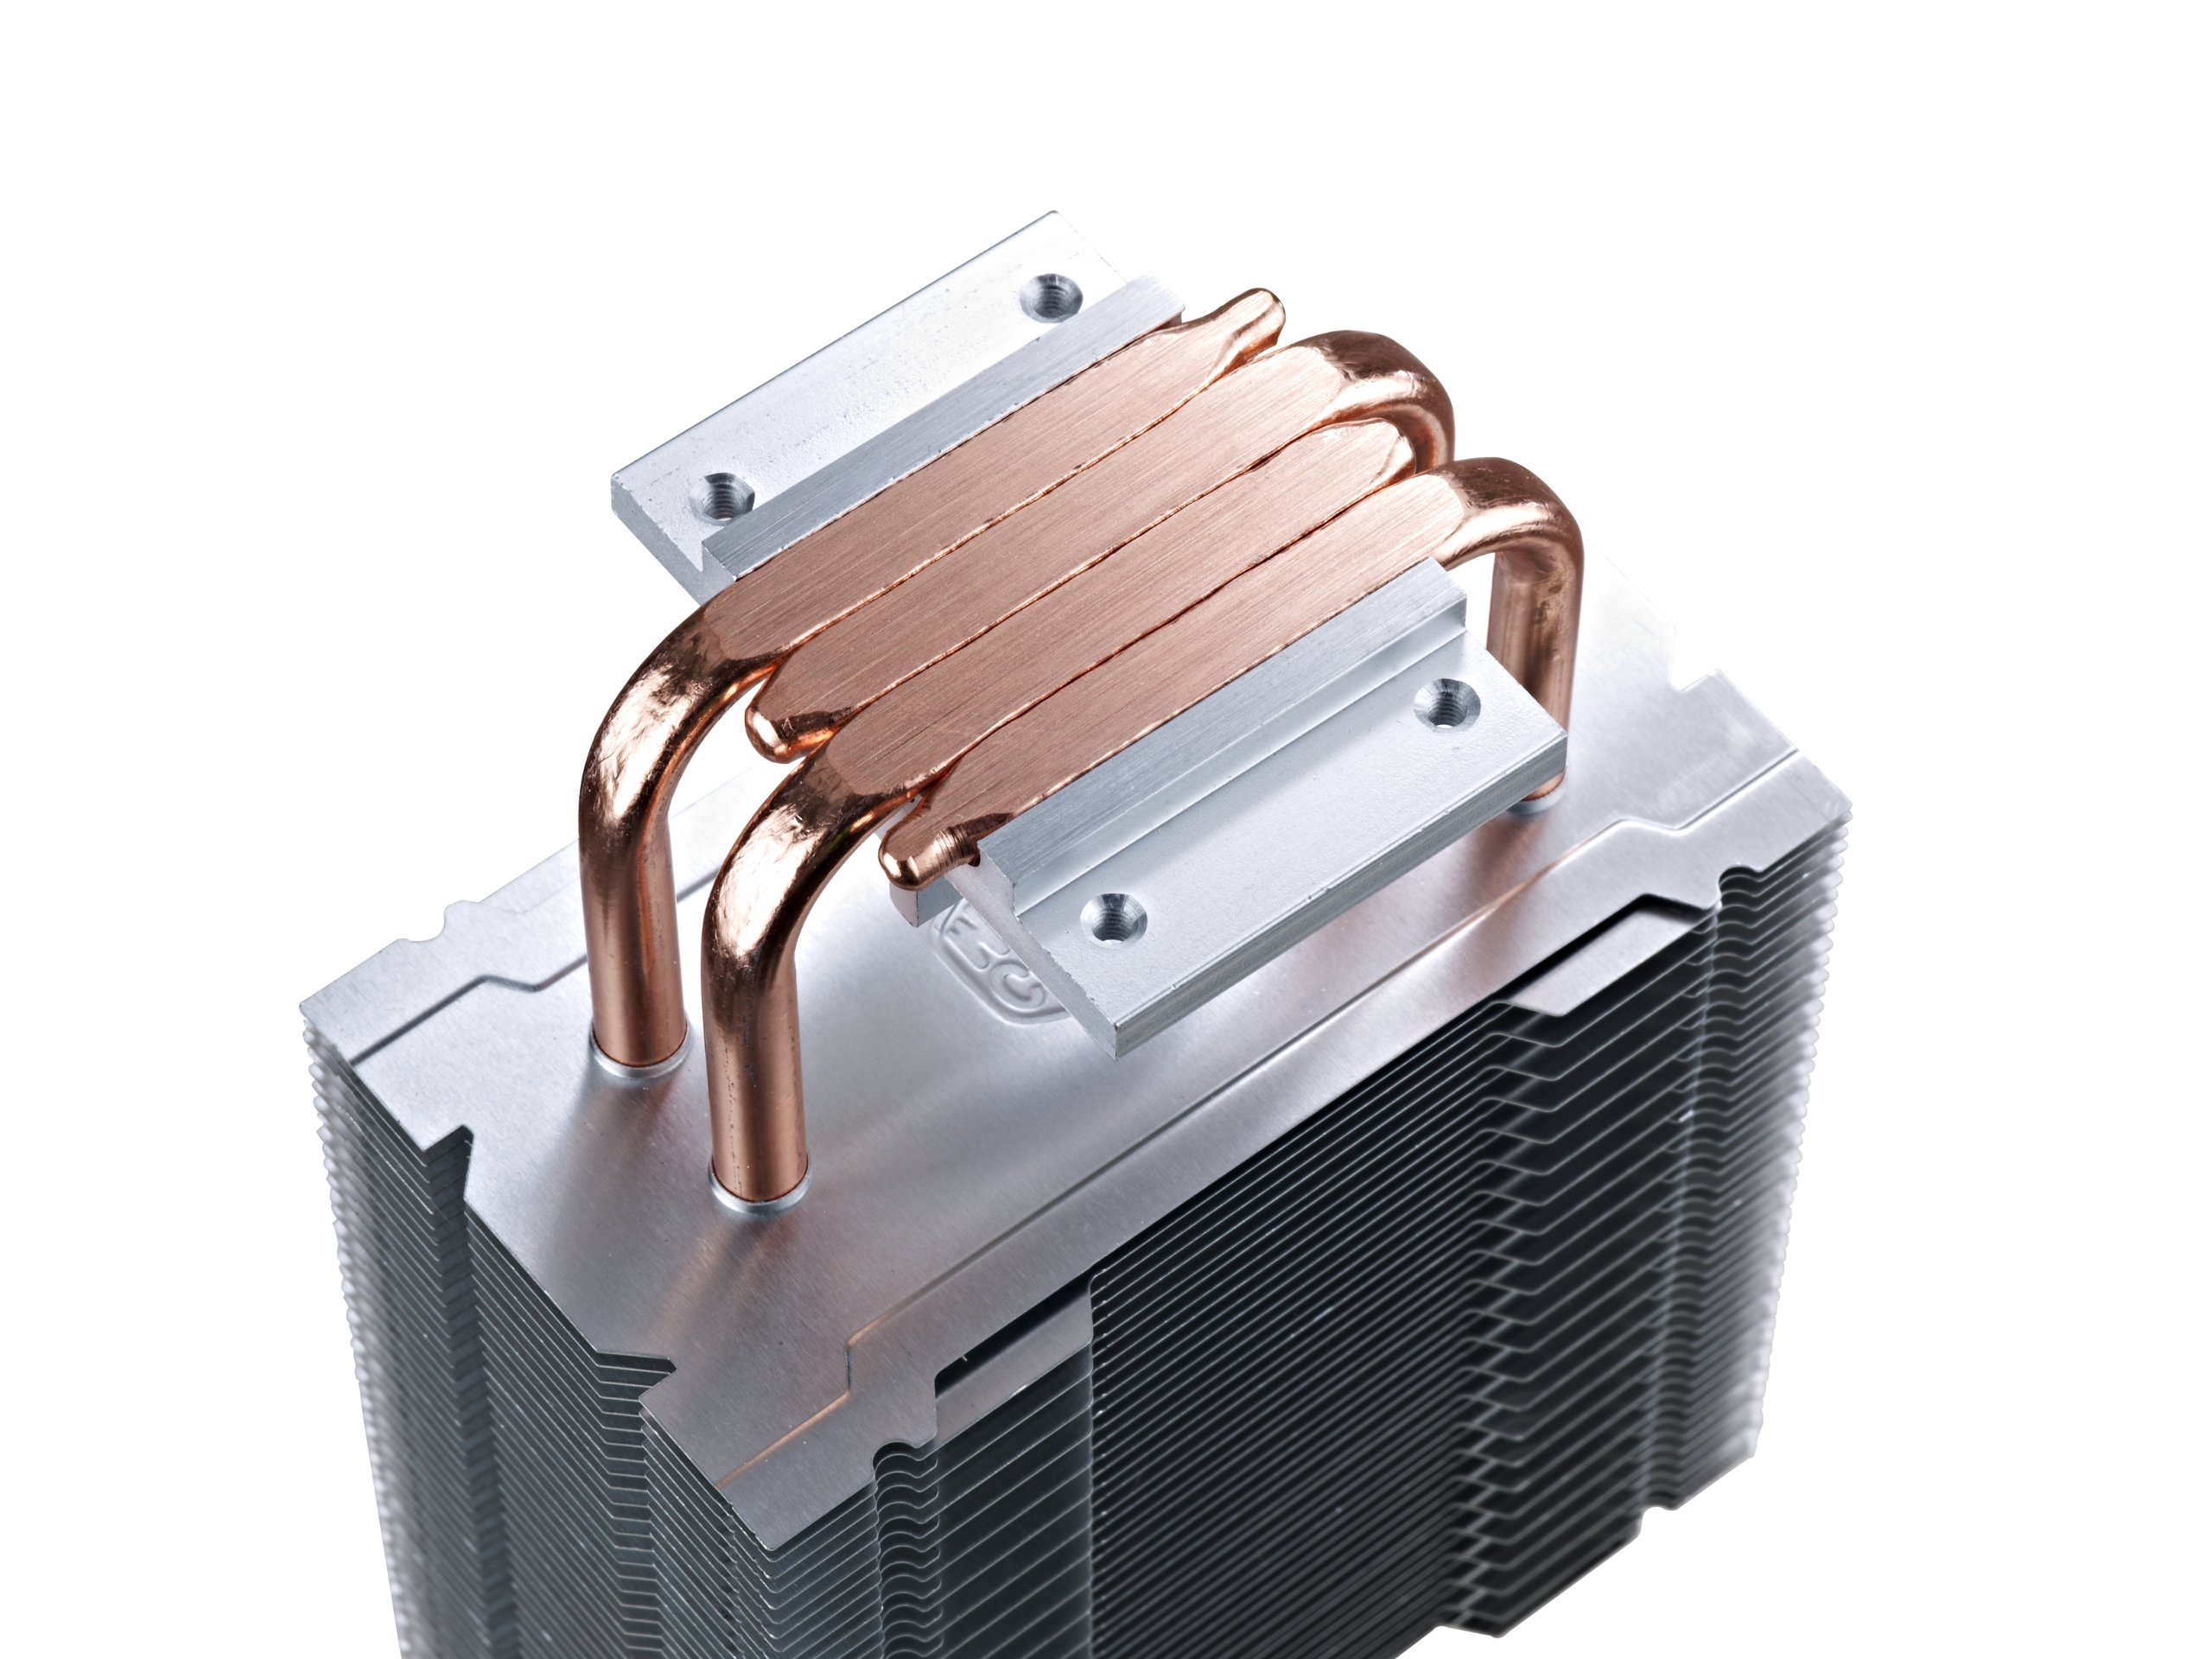 Cooler Master RR-HT2-28PK-R1 Hyper T2 - Compact CPU Cooler with Dual Looped Direct Contact Heatpipes, Intel/AMD with AM4 Support by Cooler Master (Image #4)